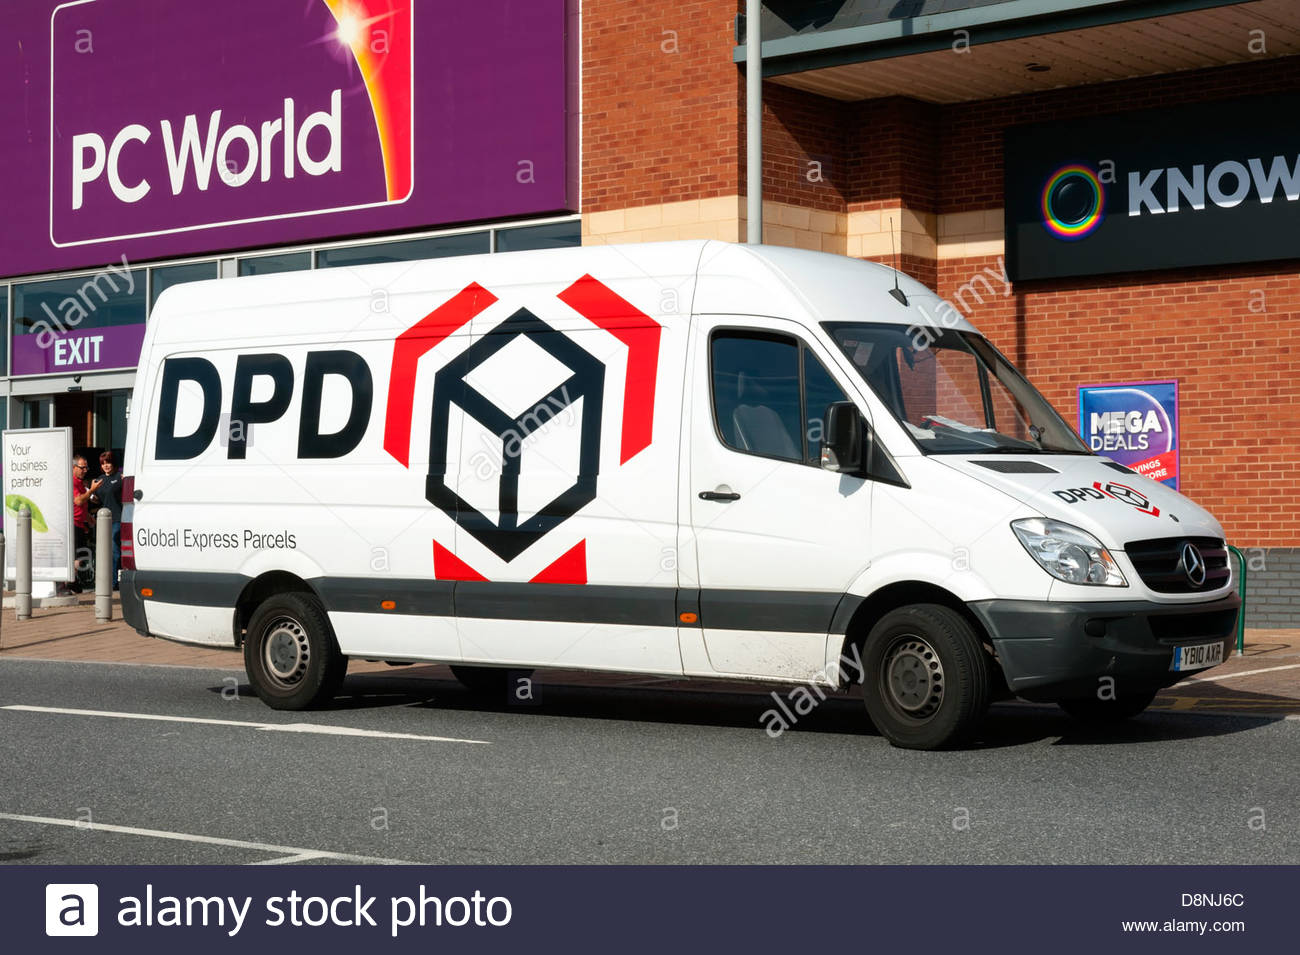 Courier Van Stock Photos & Courier Van Stock Images - Alamy